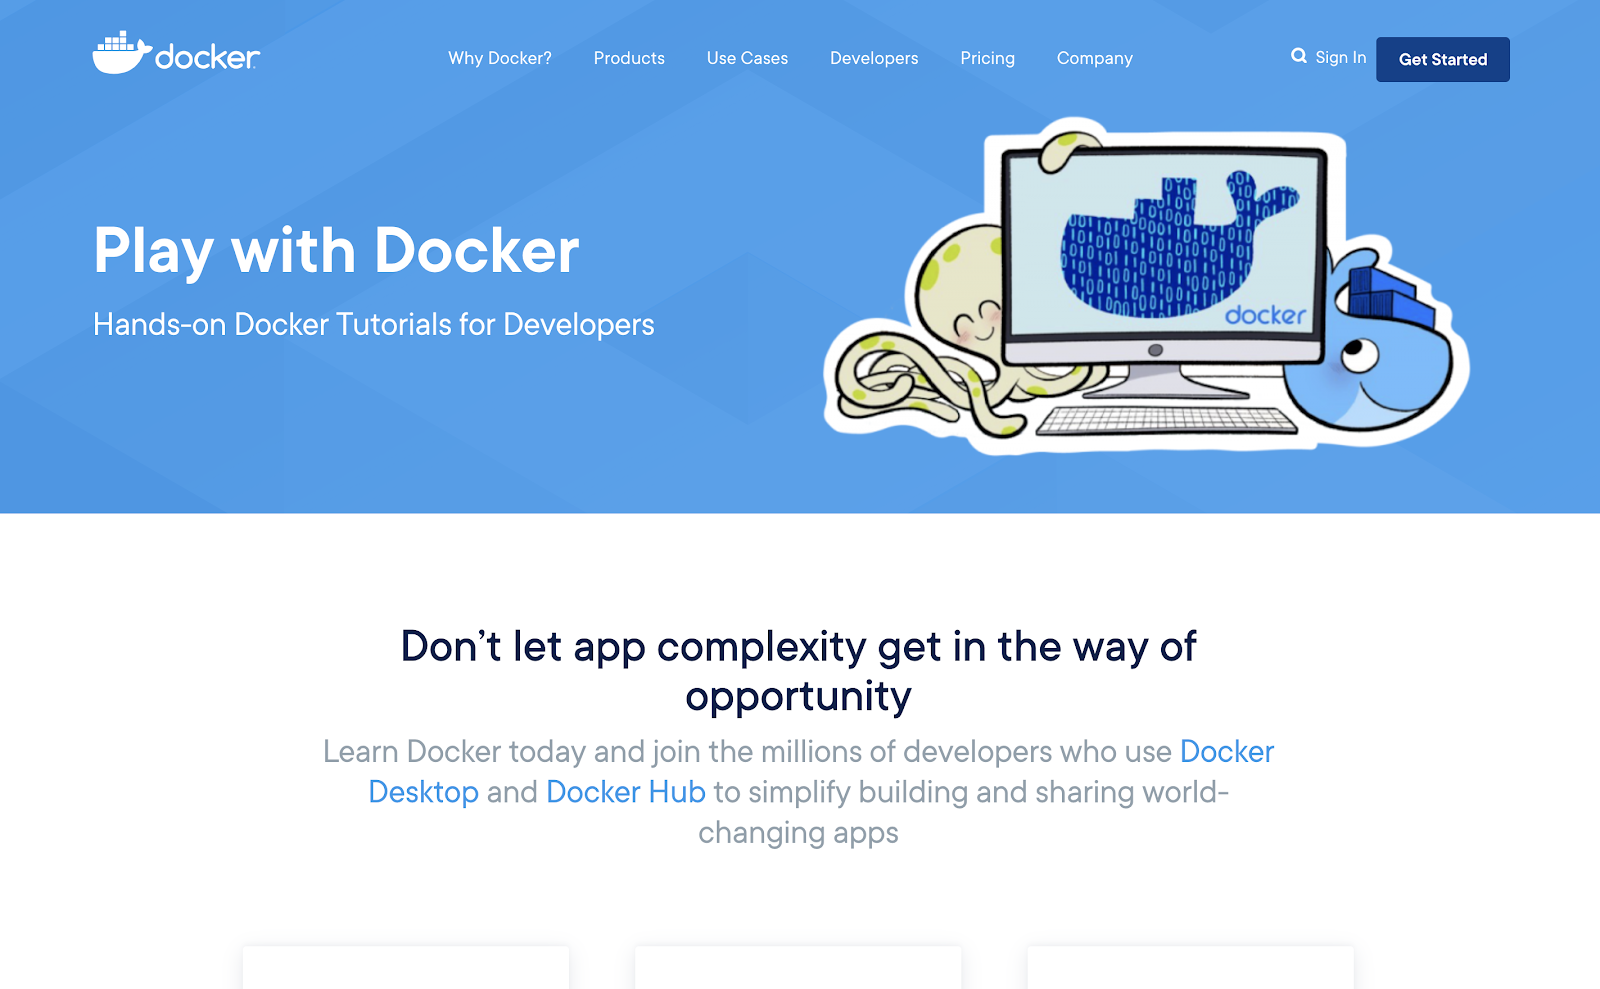 Play With Docker landing page